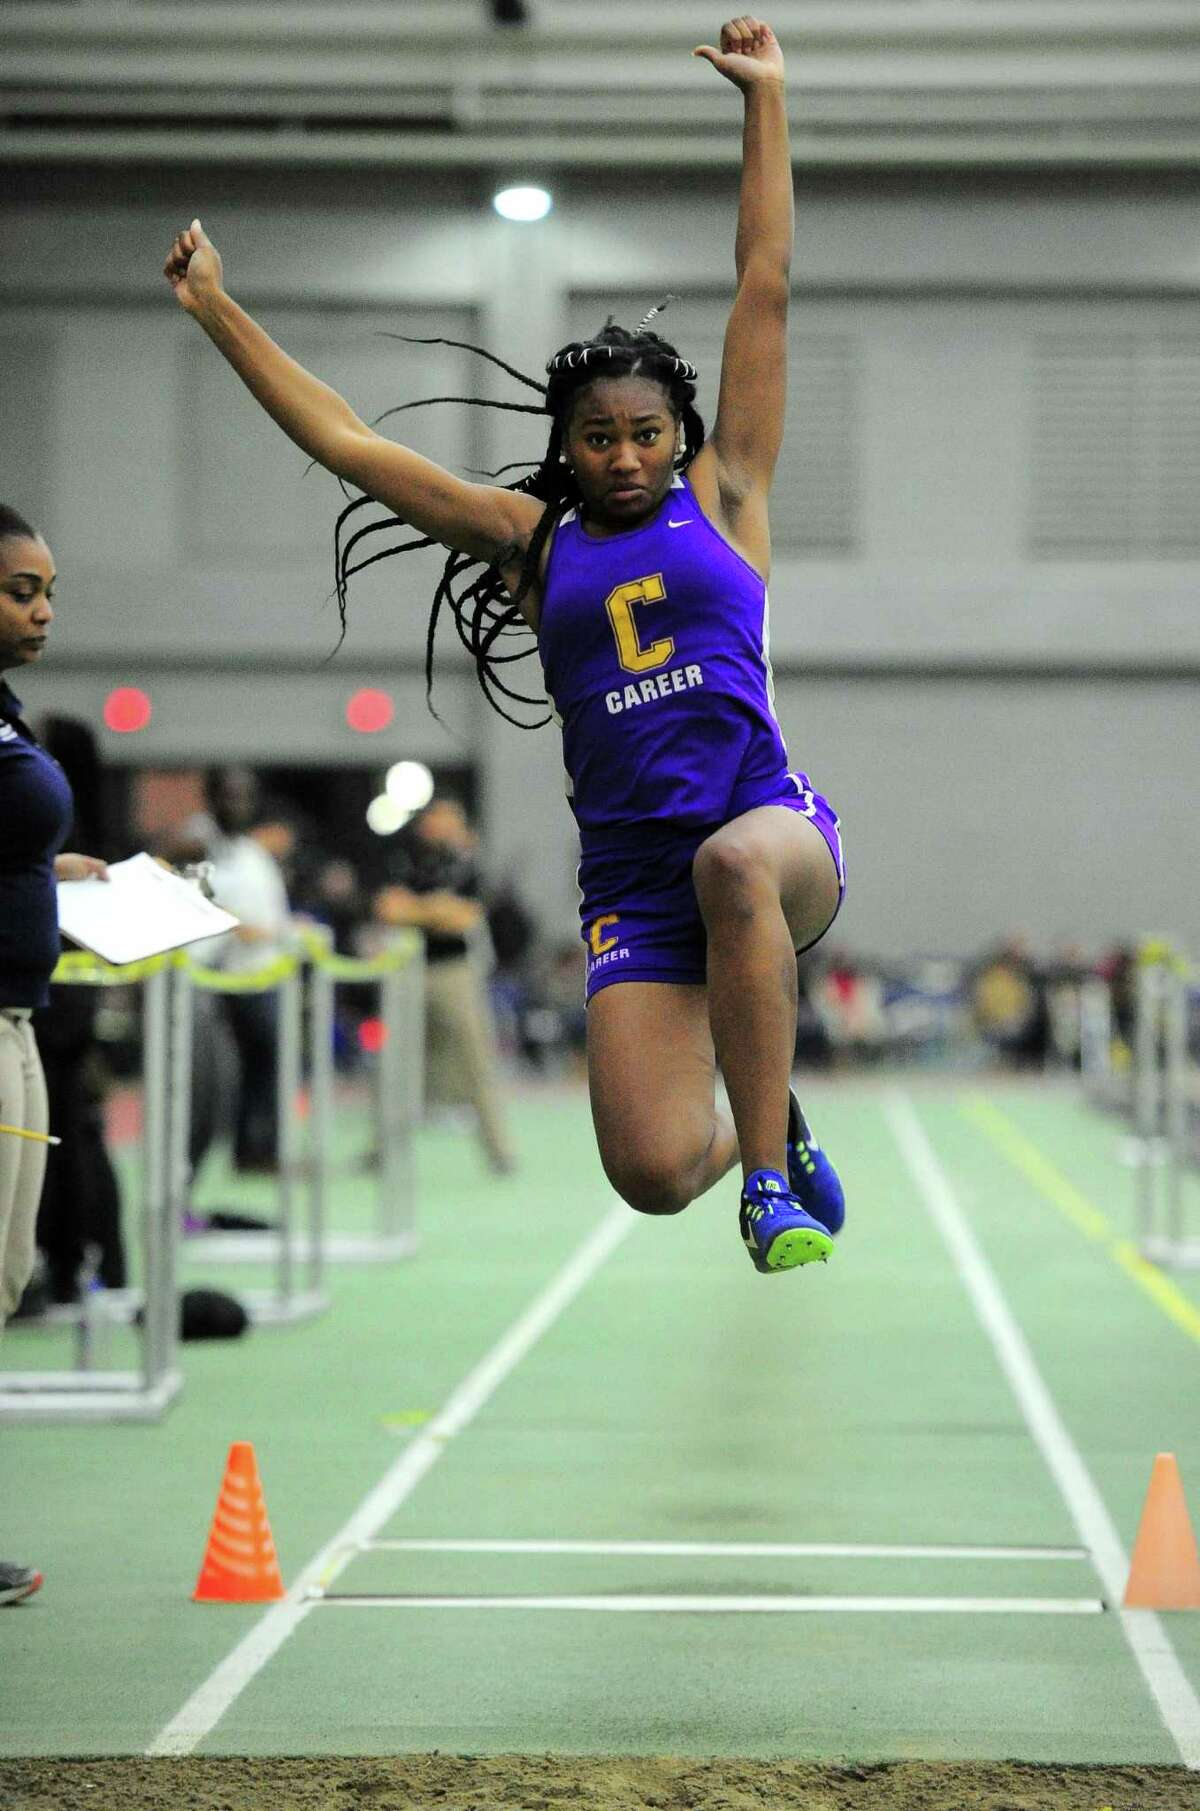 Career's Amaje Freeman competes in the long jump during the SCC Indoor Track and Field Championship Friday in New Haven.